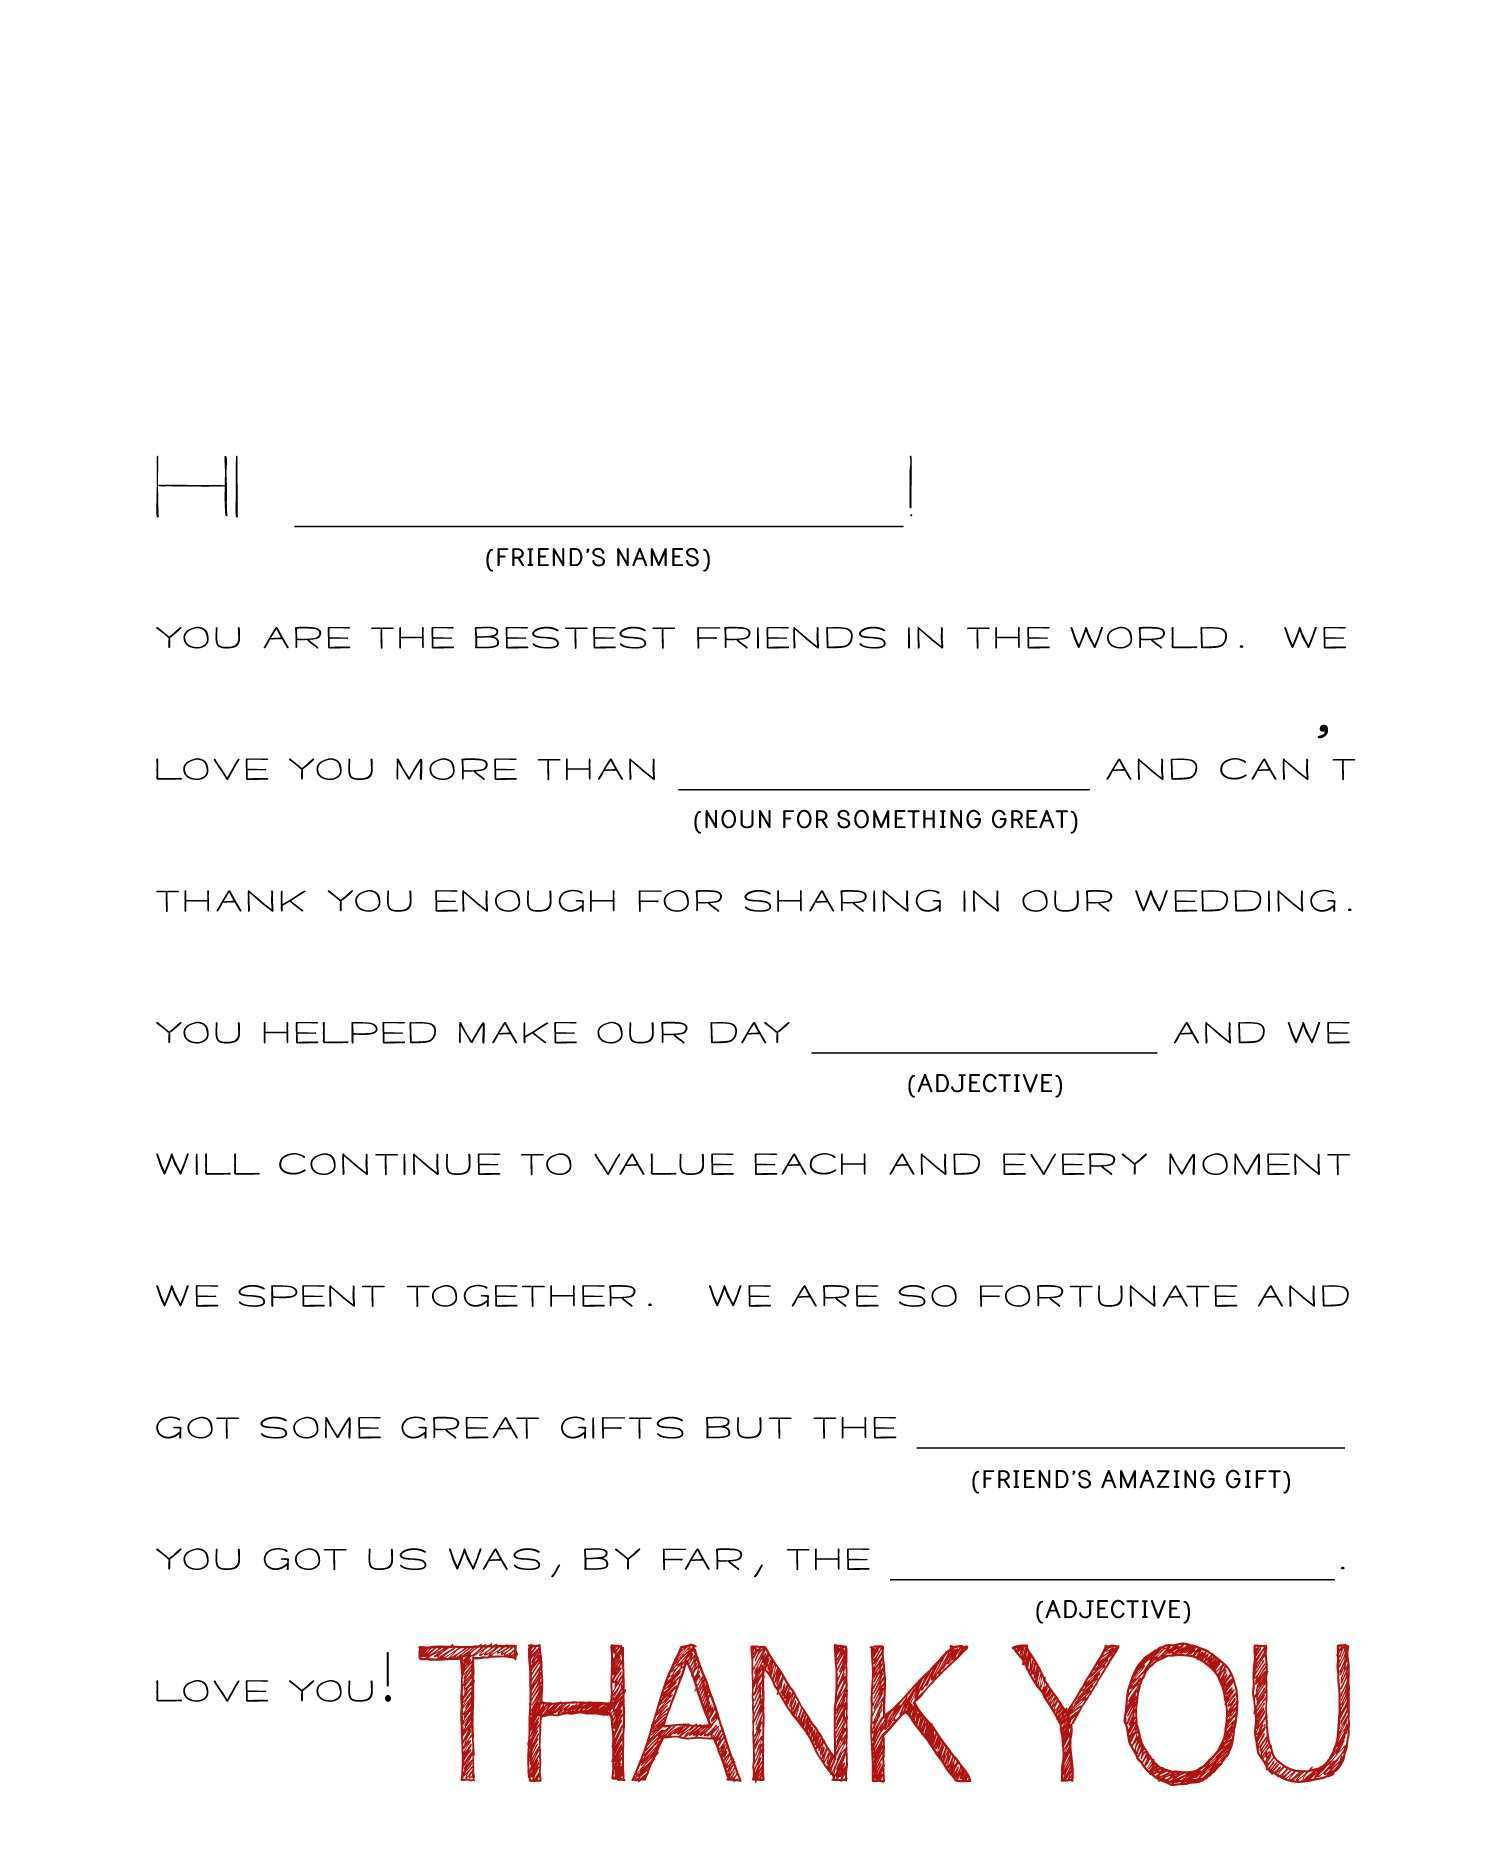 21 Free Printable Thank You Card Template Graduation Money Psd File With Thank You Card Template Graduation Money Cards Design Templates